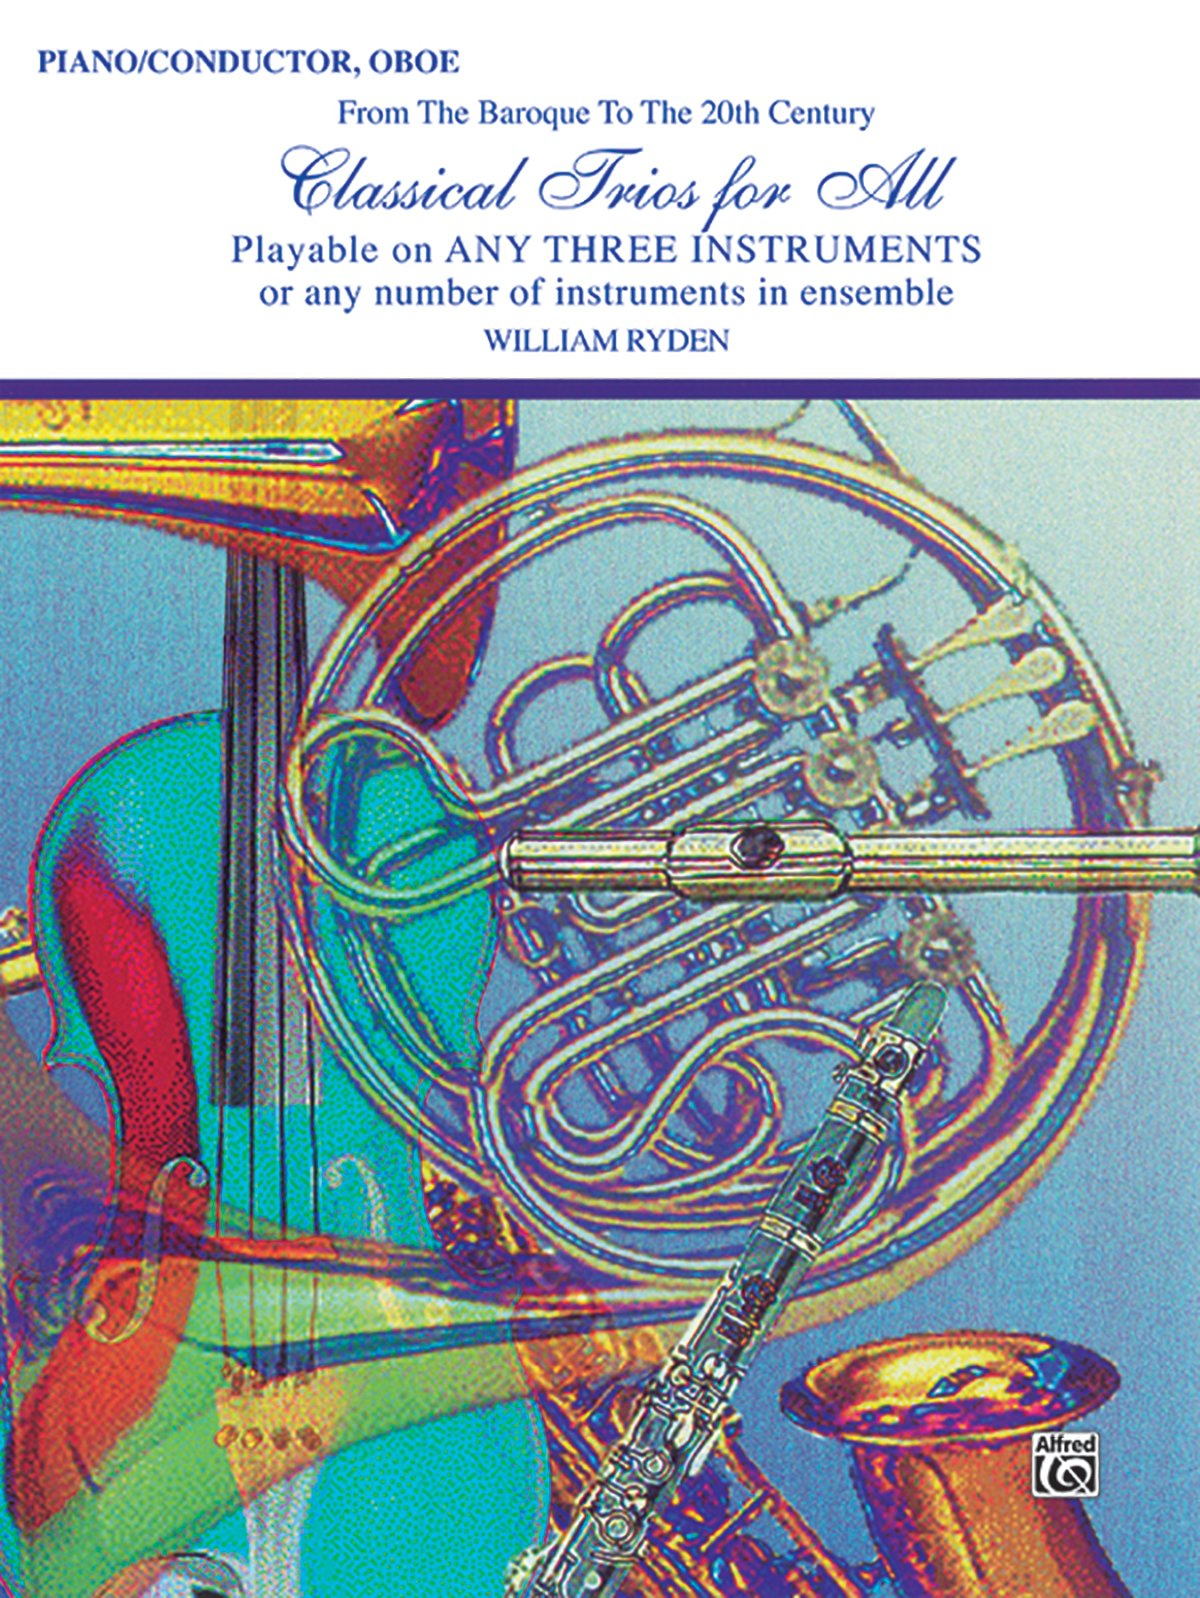 Classical Trios for All (From the Baroque to the 20th Century): Piano/Conductor, Oboe (Classical Instrumental Ensembles for All)